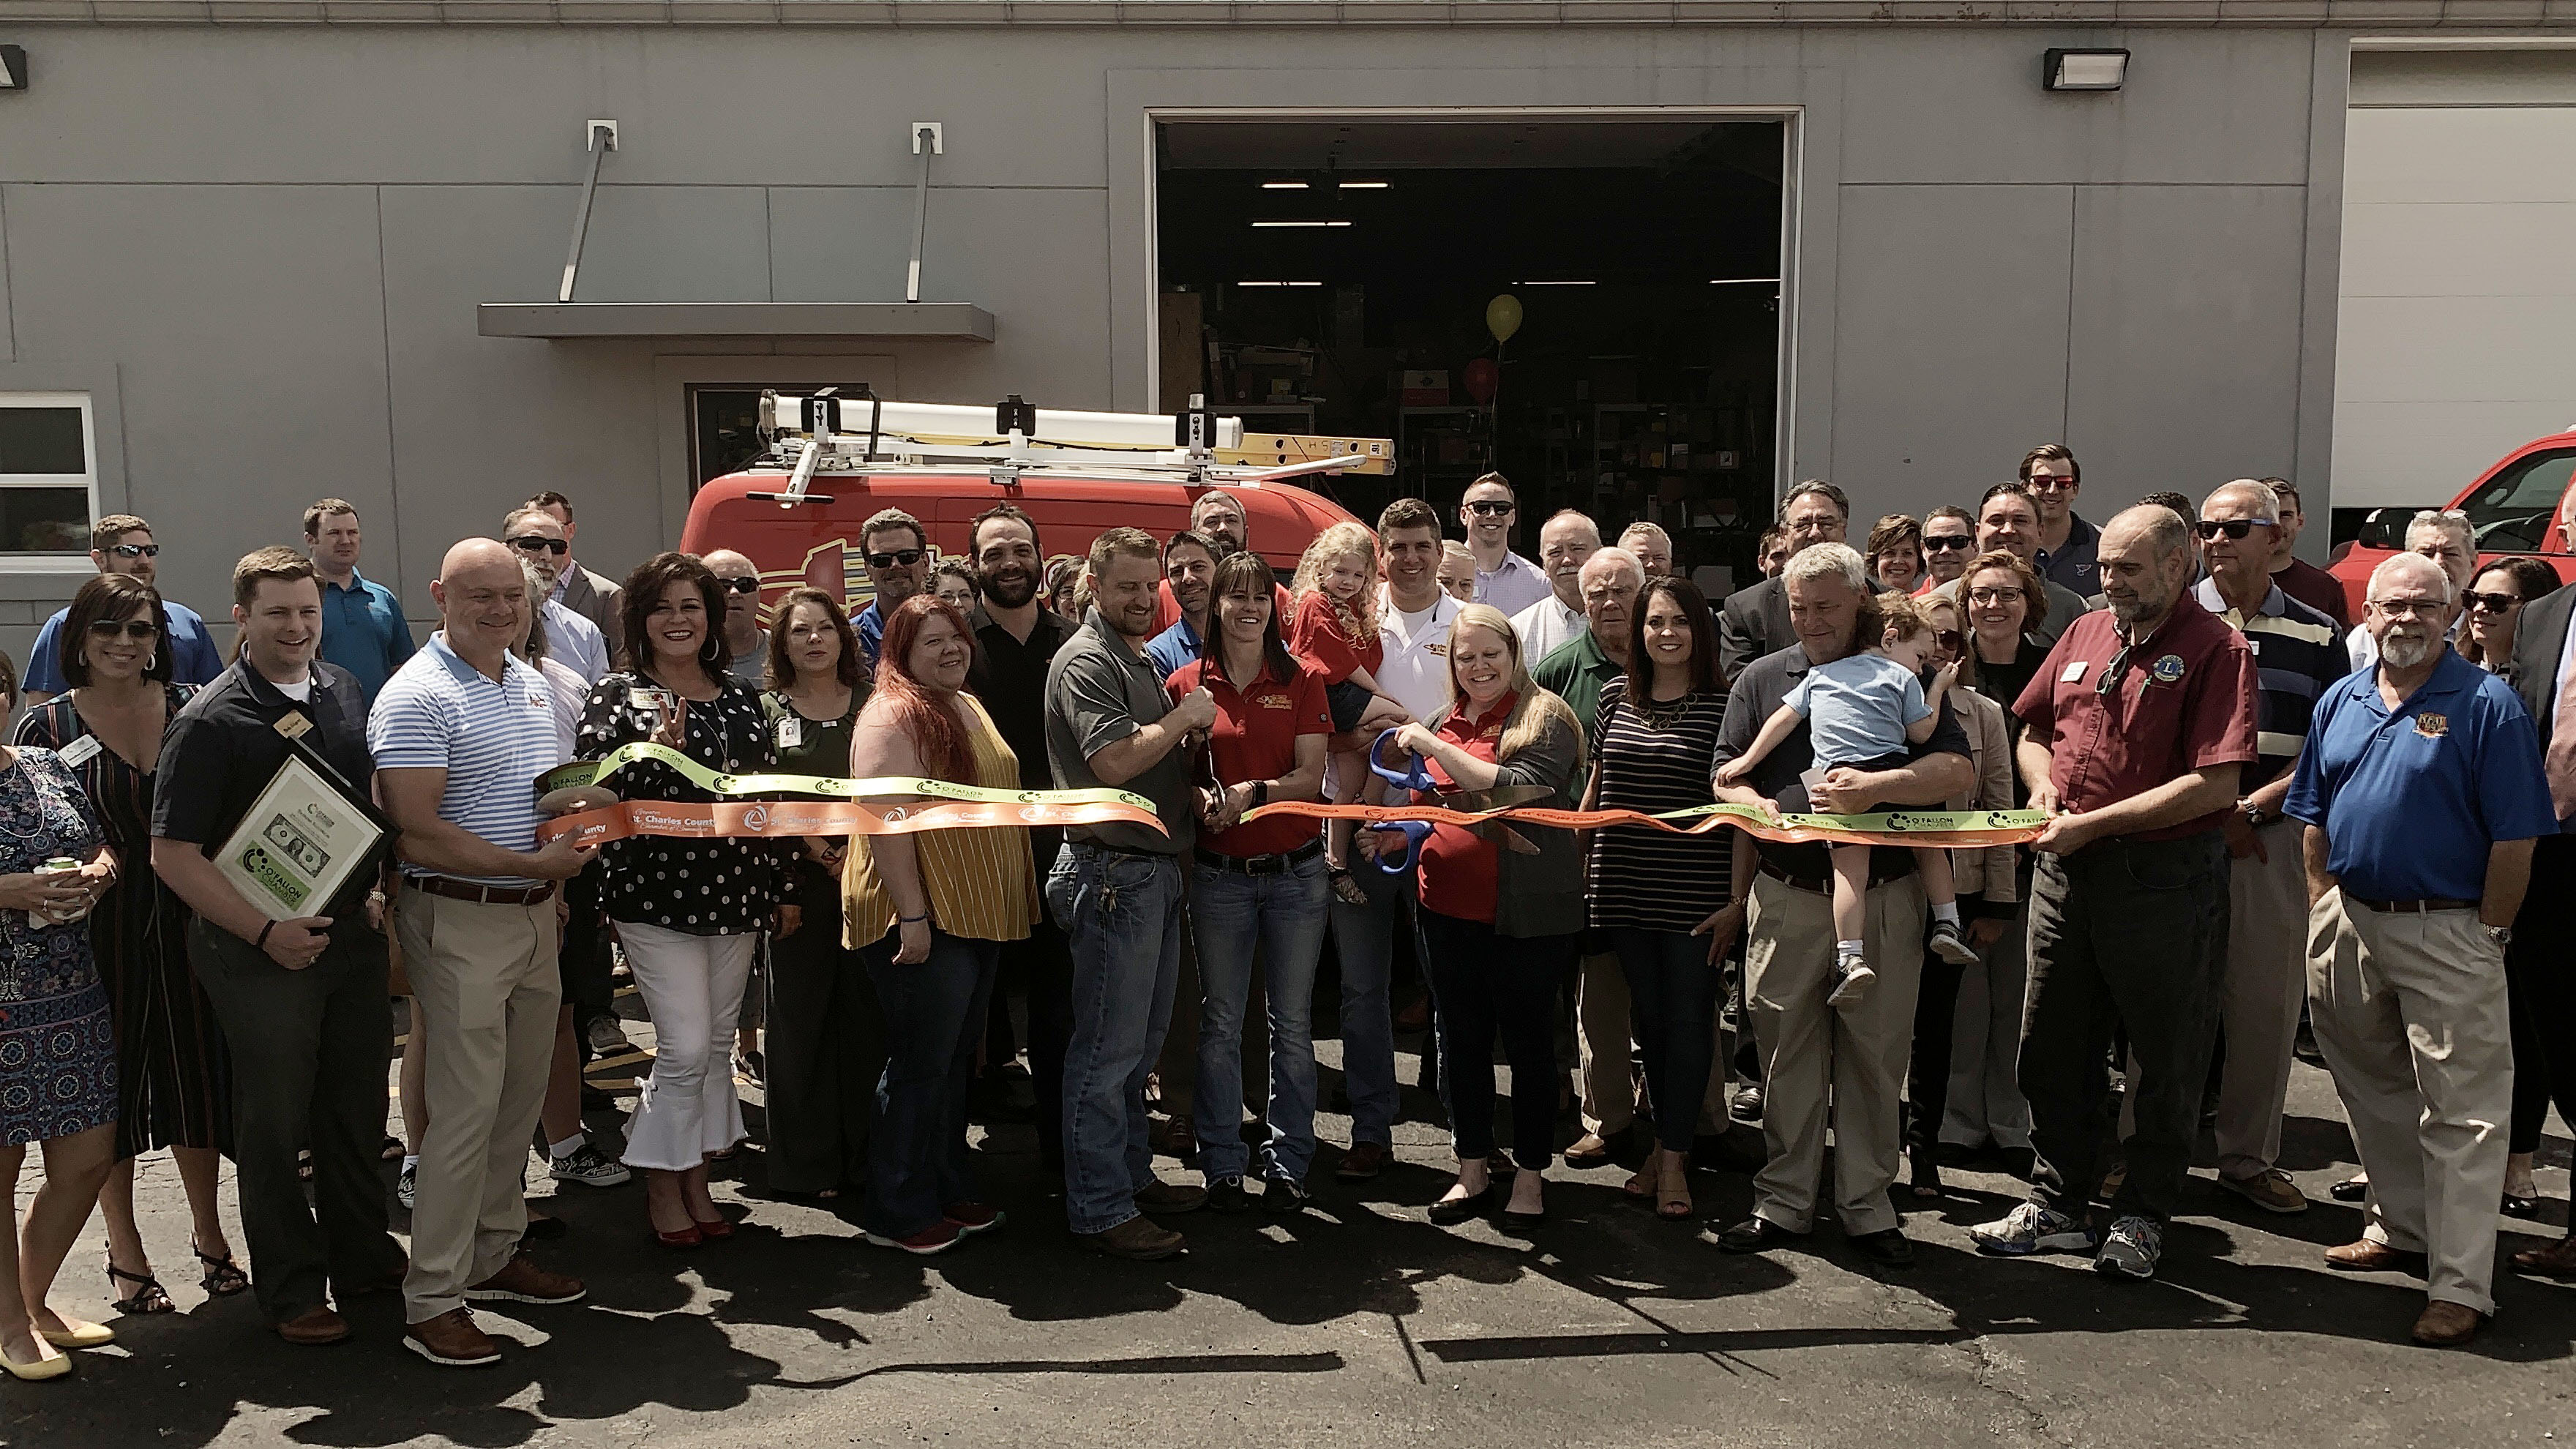 Extreme Electrical Contractors Celebrates Small Business of the Year Finalist Selection with Ribbon Cutting